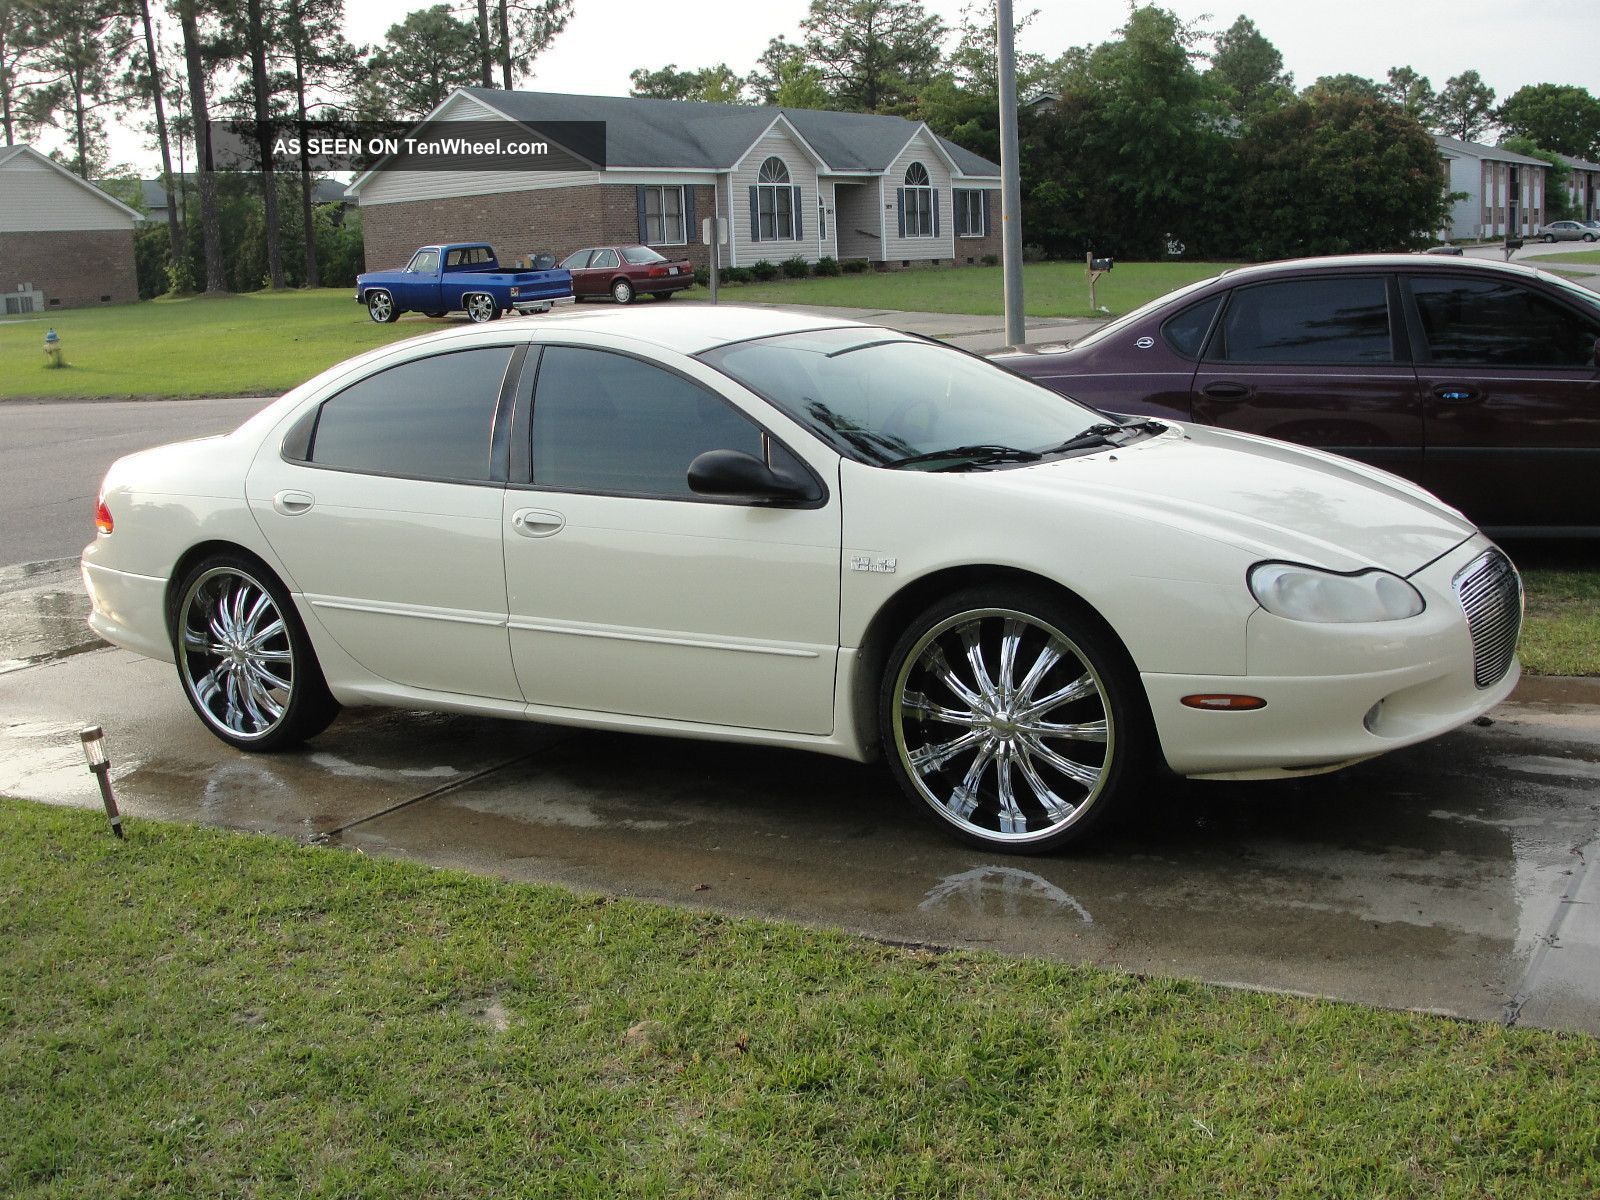 2002 Chrysler Concorde #6